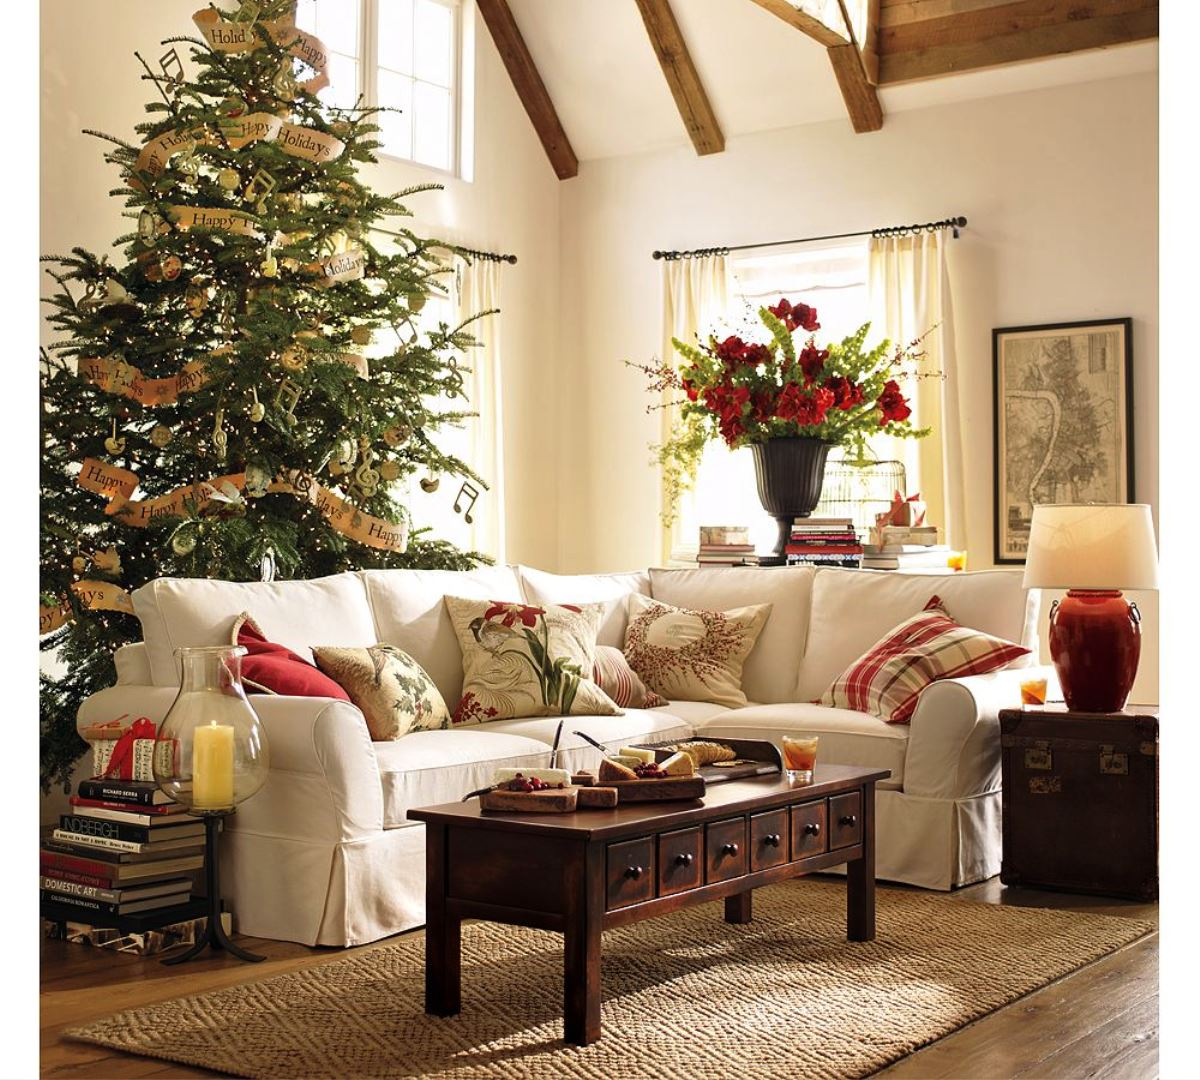 christmas decorating ideas for sofa table navy blue pillows 50 stunning decorations your living room